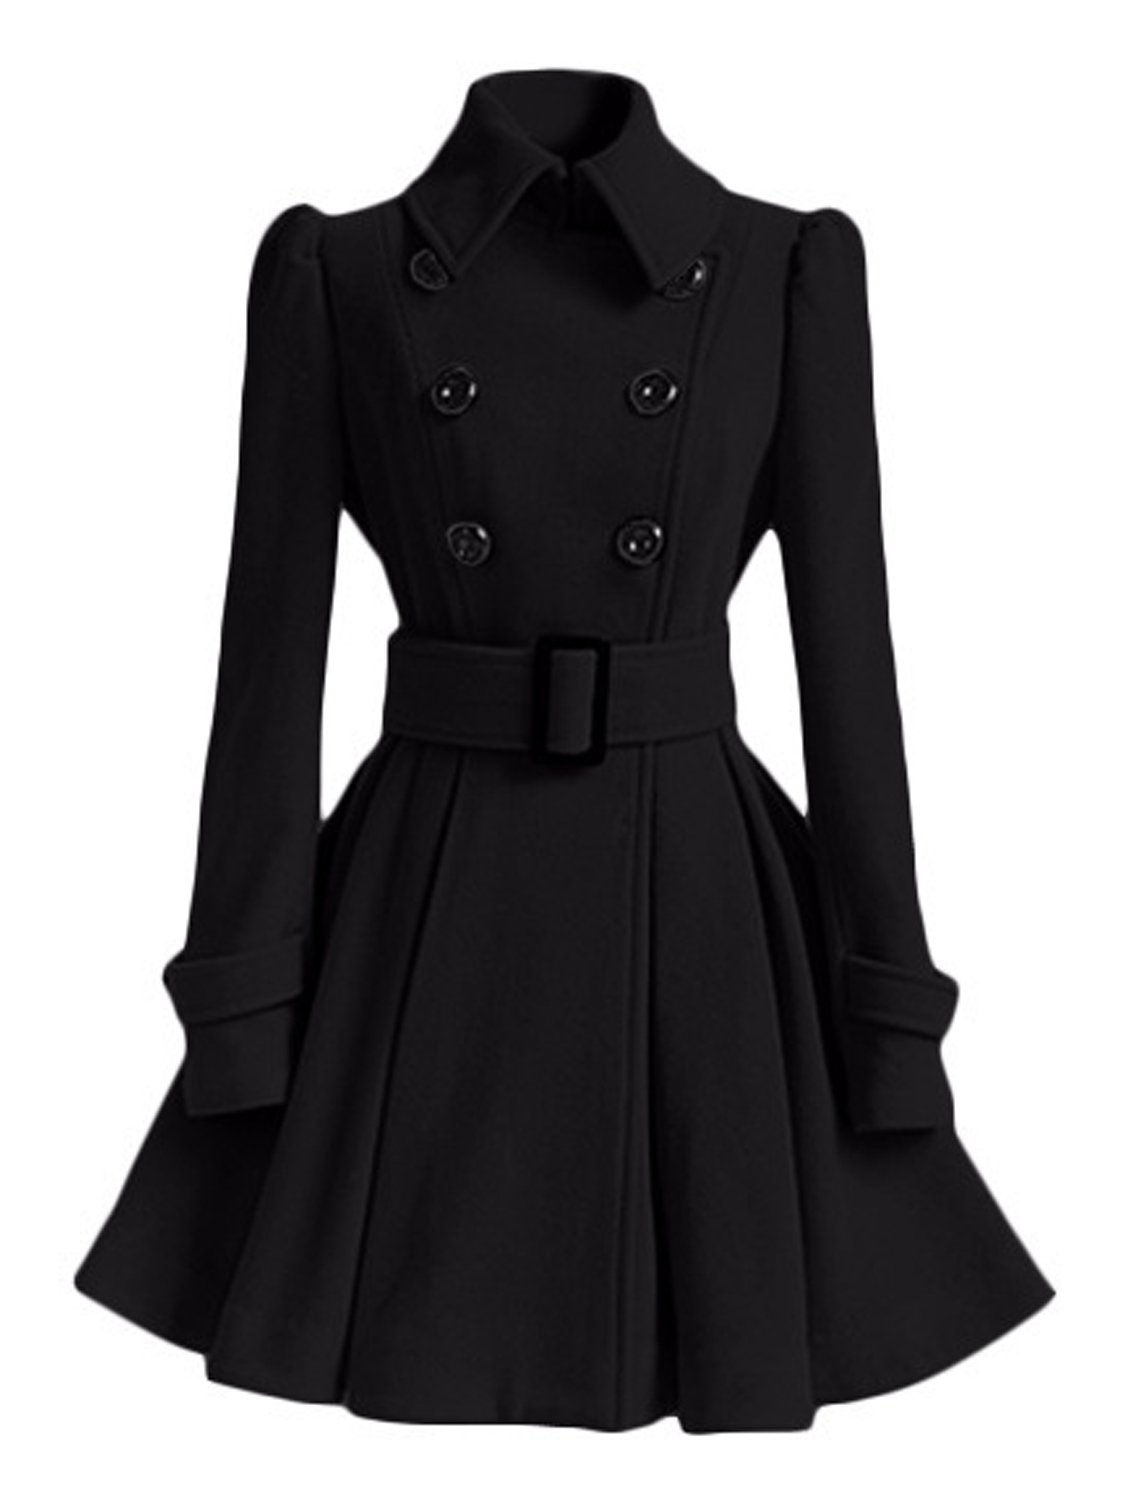 AUSZOSLT Women Swing Double Breasted Pea Coat with Belt Slim Fit Mid-Long Lapel Dress Coat Black S